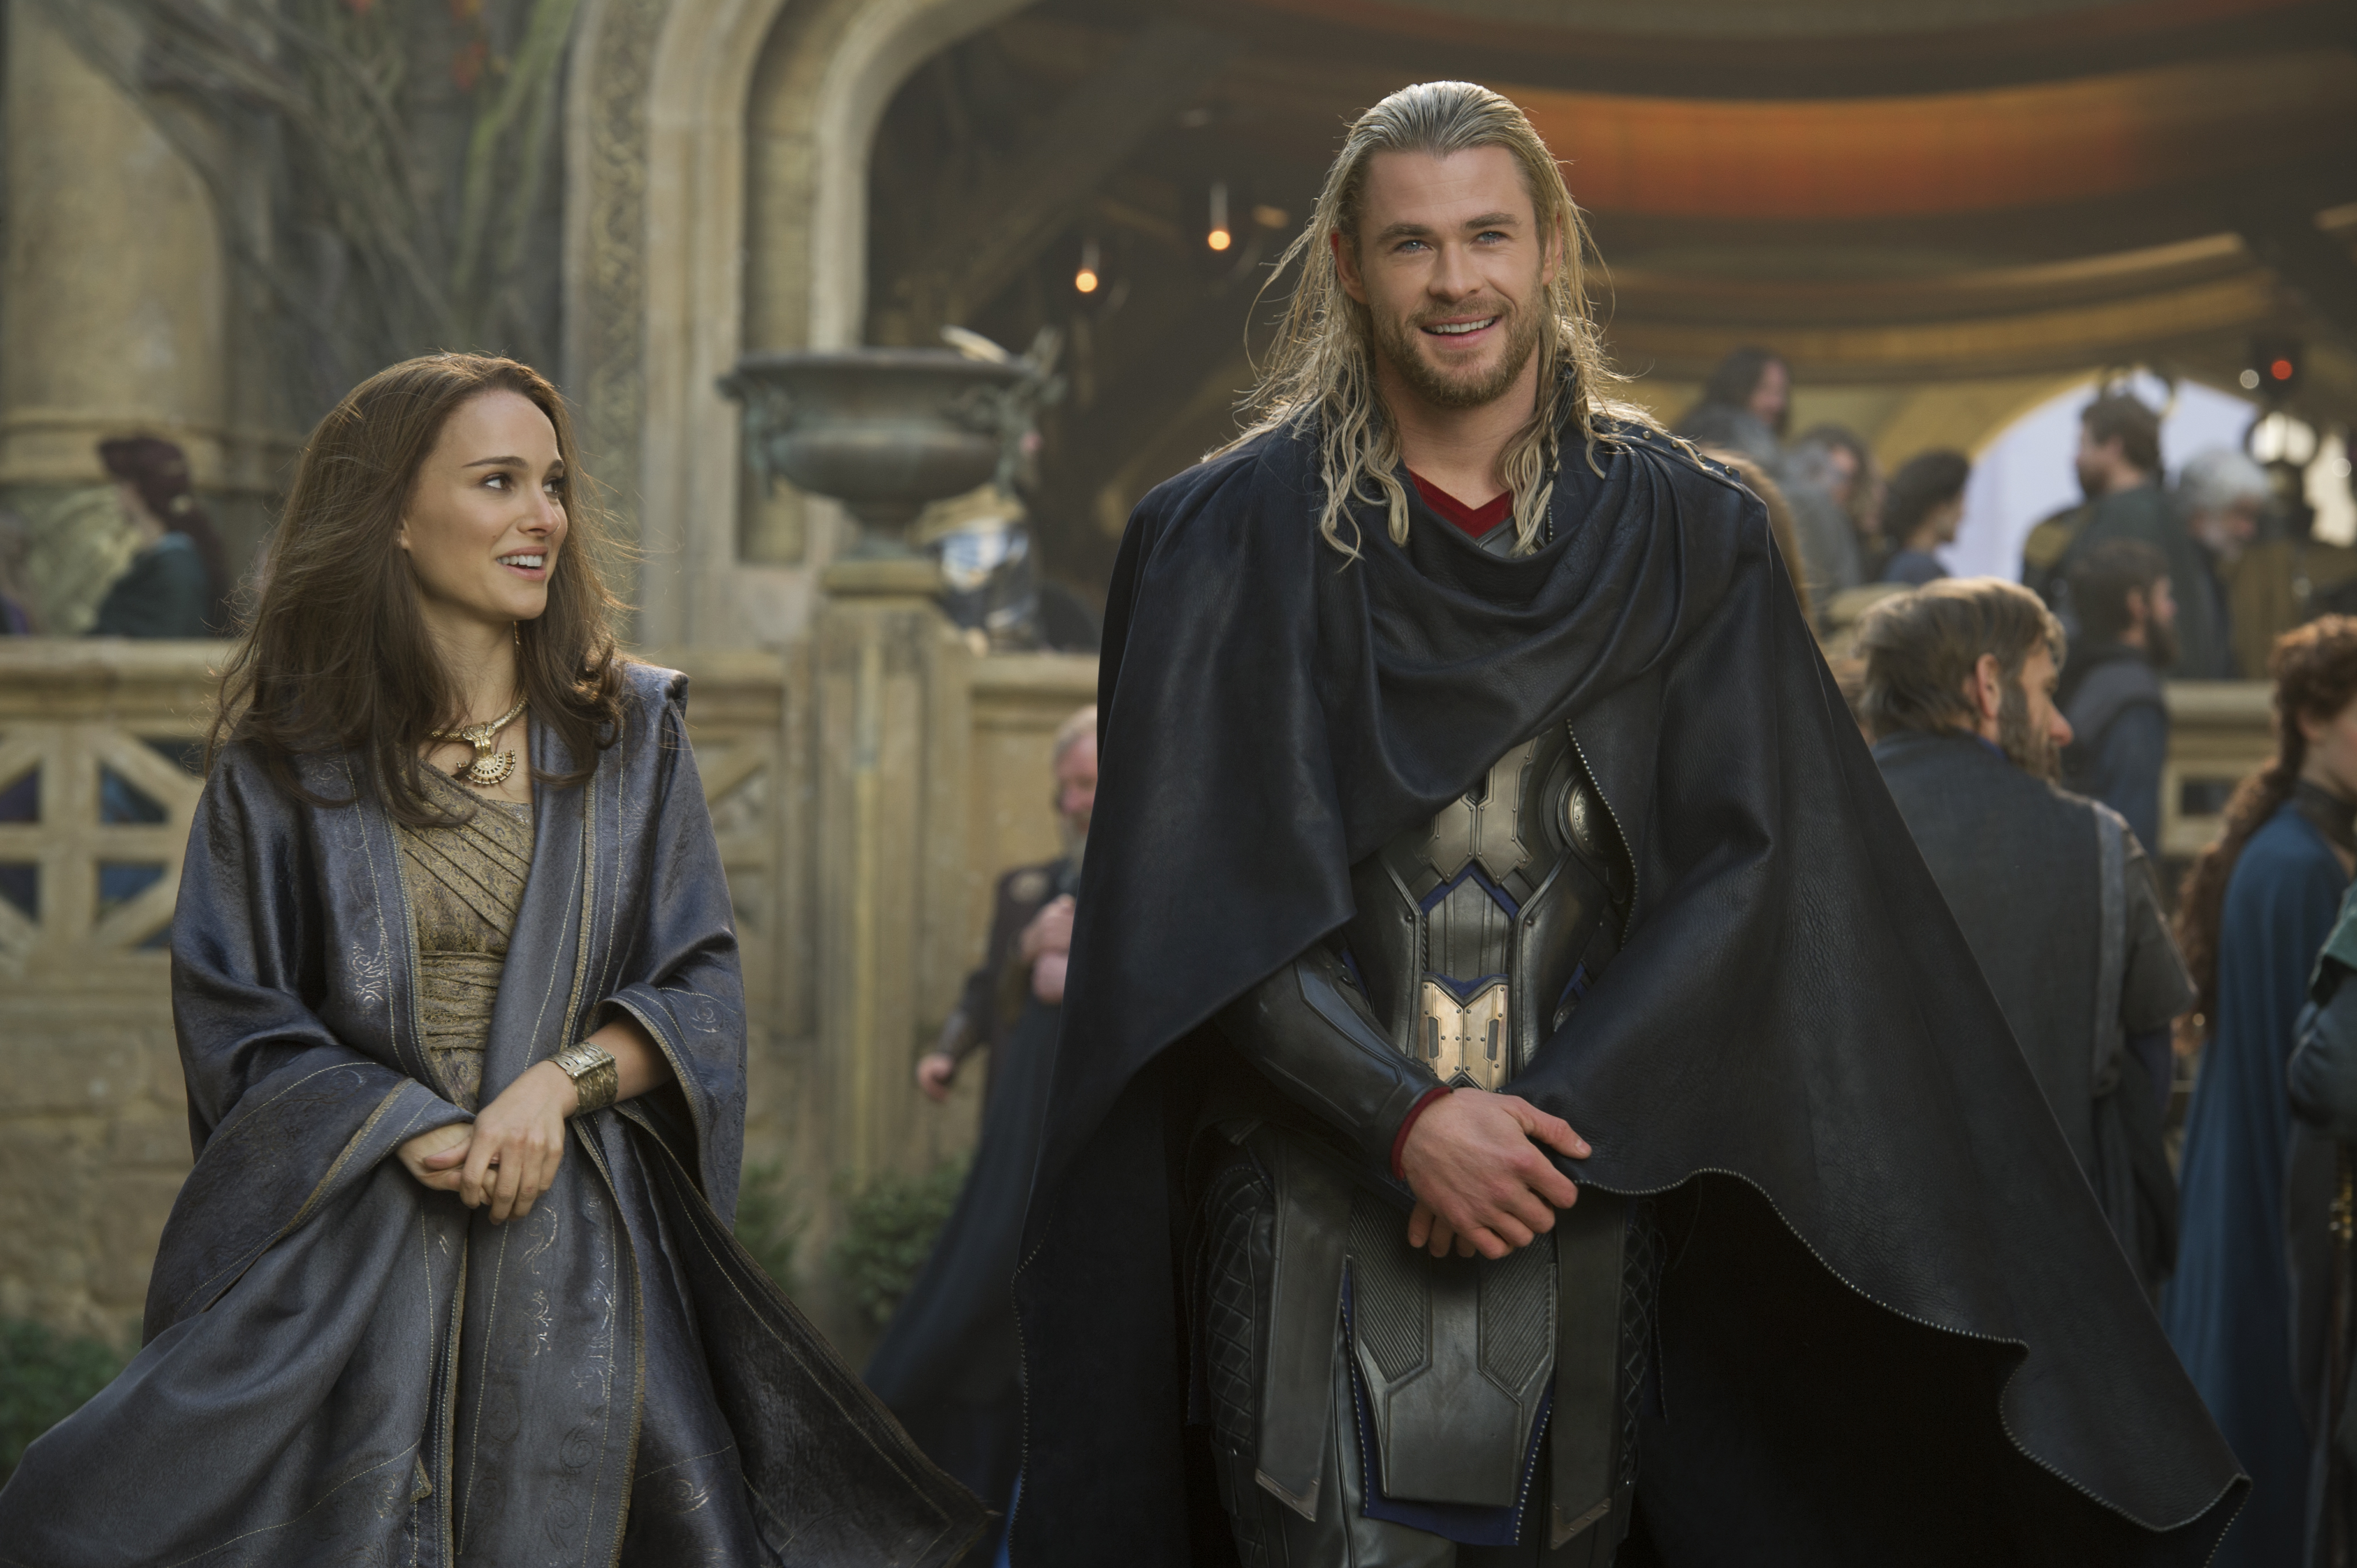 Image result for thor, jane foster, mcu